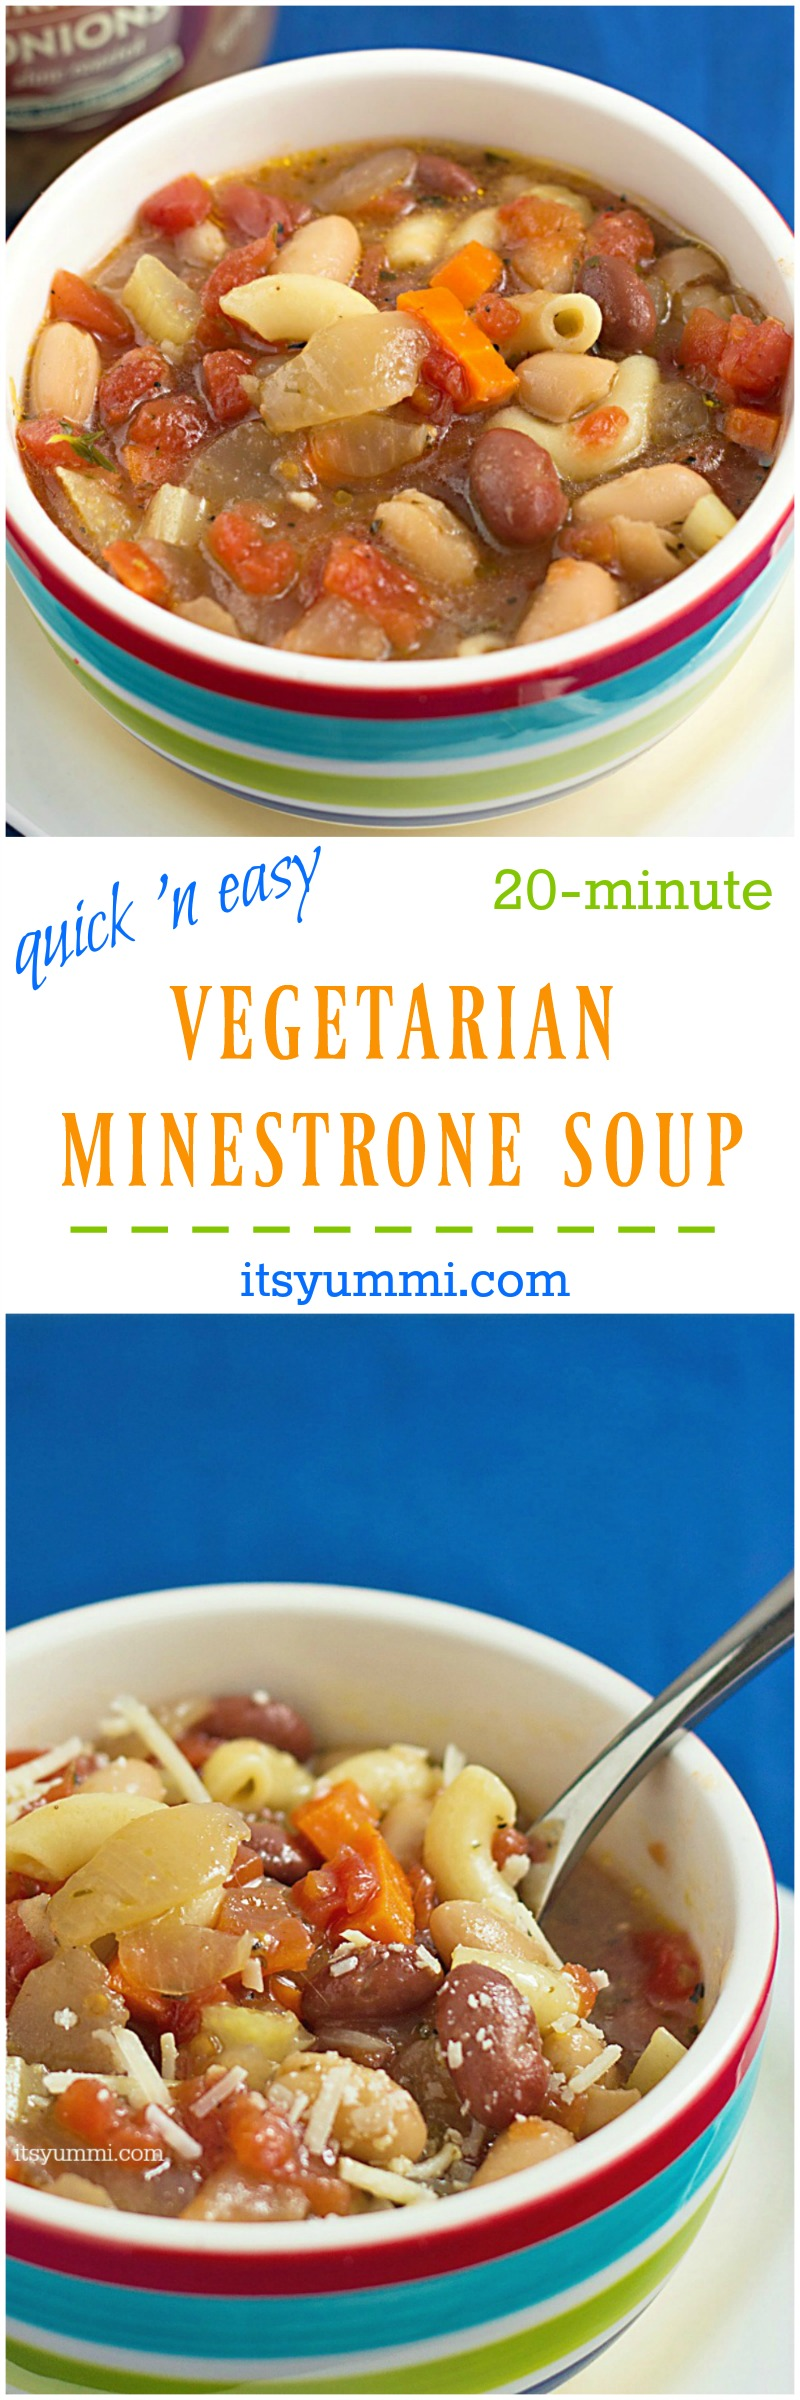 Easy Vegetarian Minestrone Soup ⋆ Its Yummi